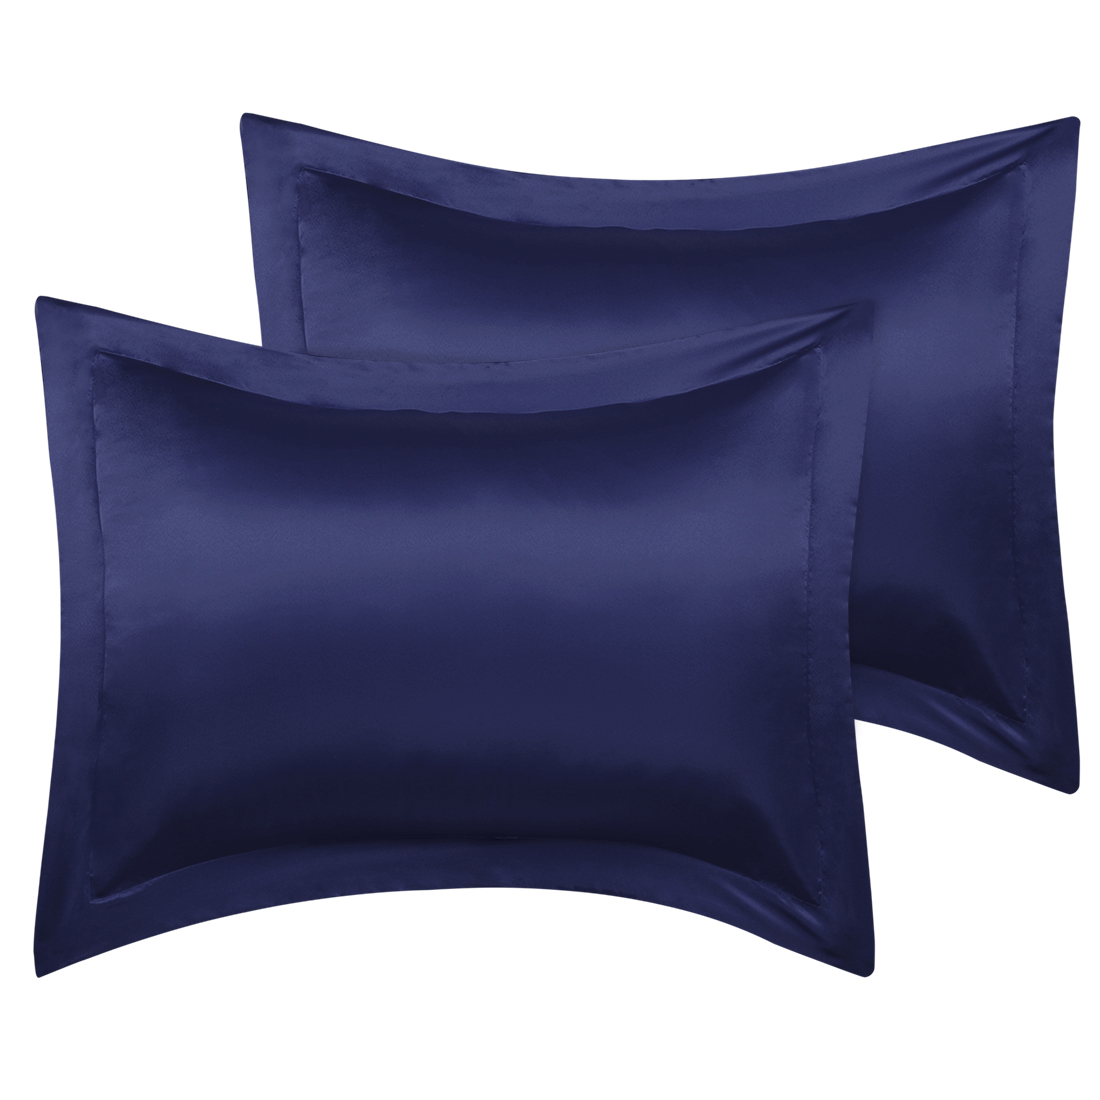 2 Pcs Navy Pillow Shams Satin Pillow Cases Queen Oxford Pillowcases